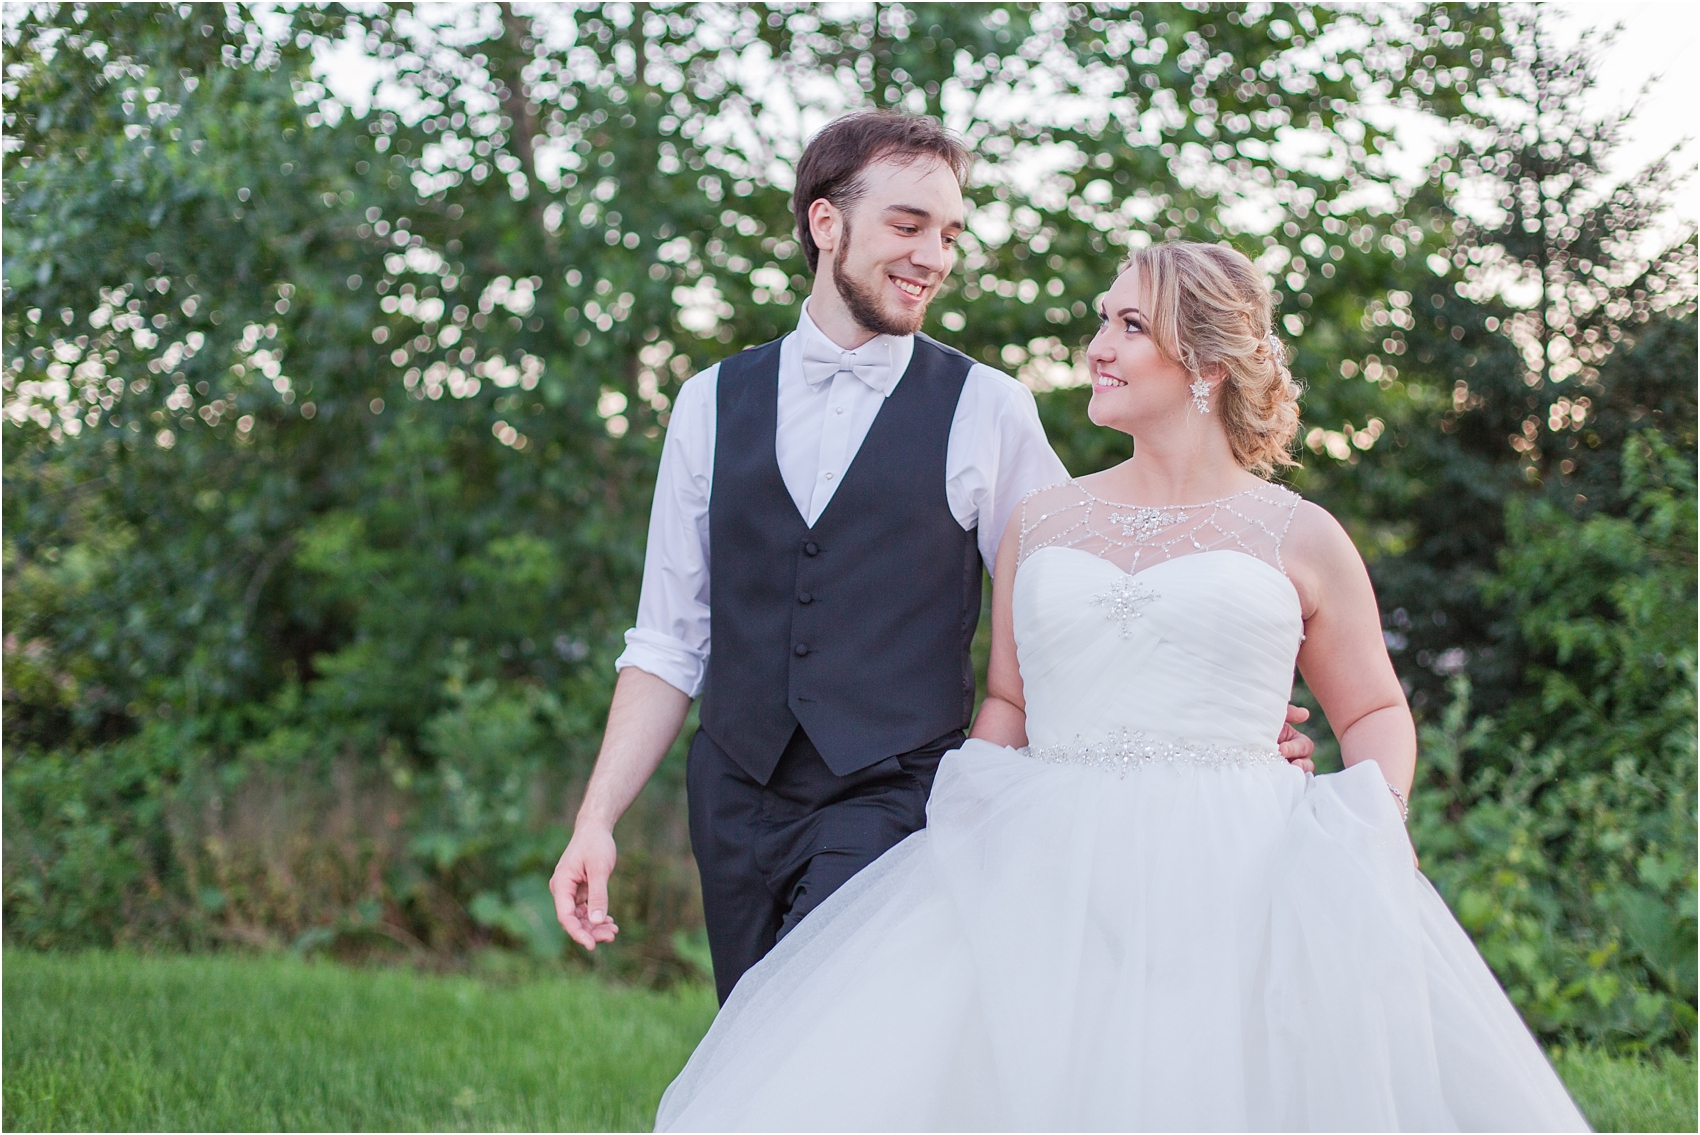 lord-of-the-rings-inspired-wedding-photos-at-crystal-gardens-in-howell-mi-by-courtney-carolyn-photography_0116.jpg